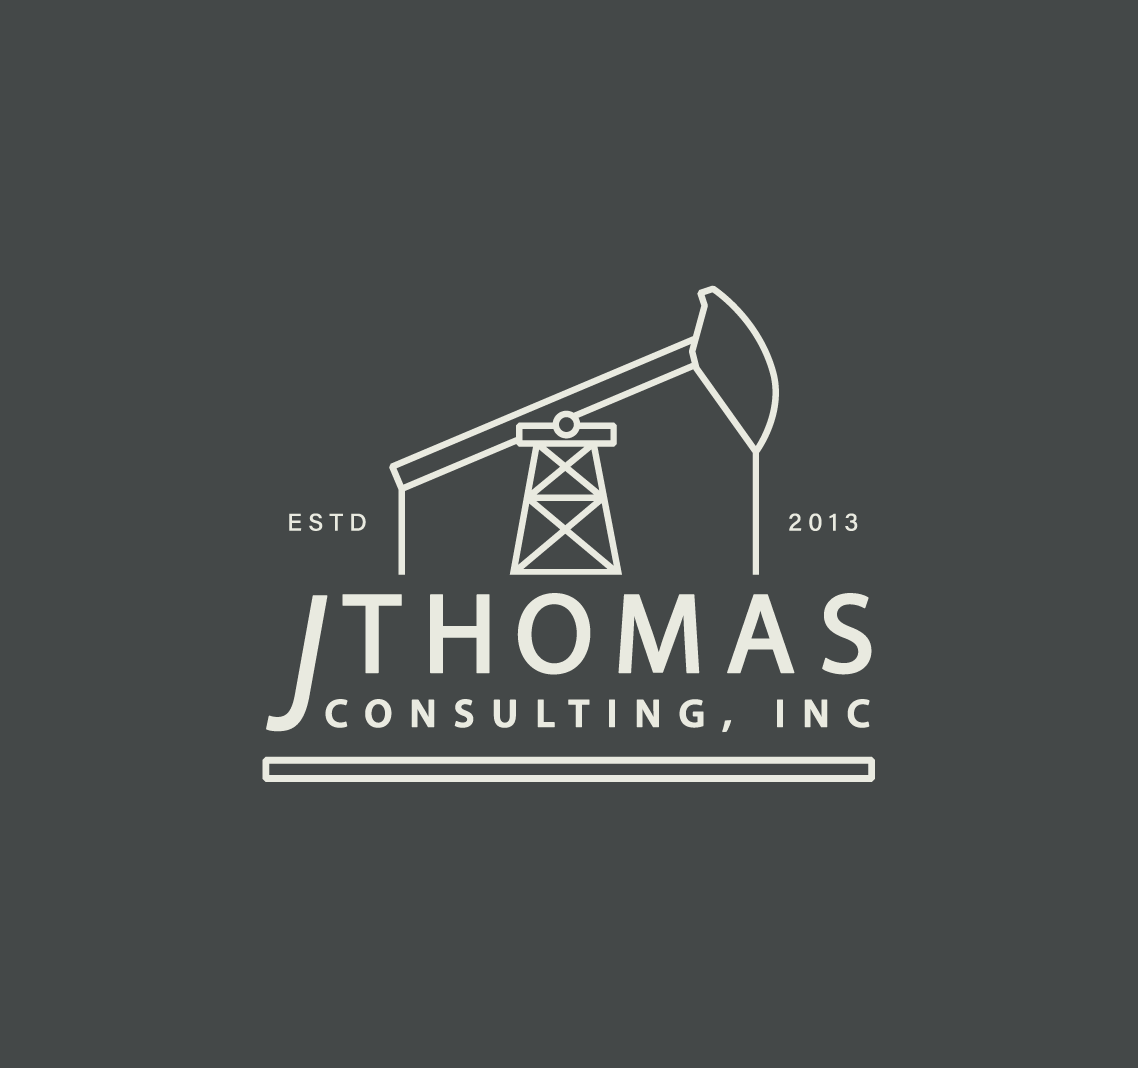 j thomas consulting-61-61.png